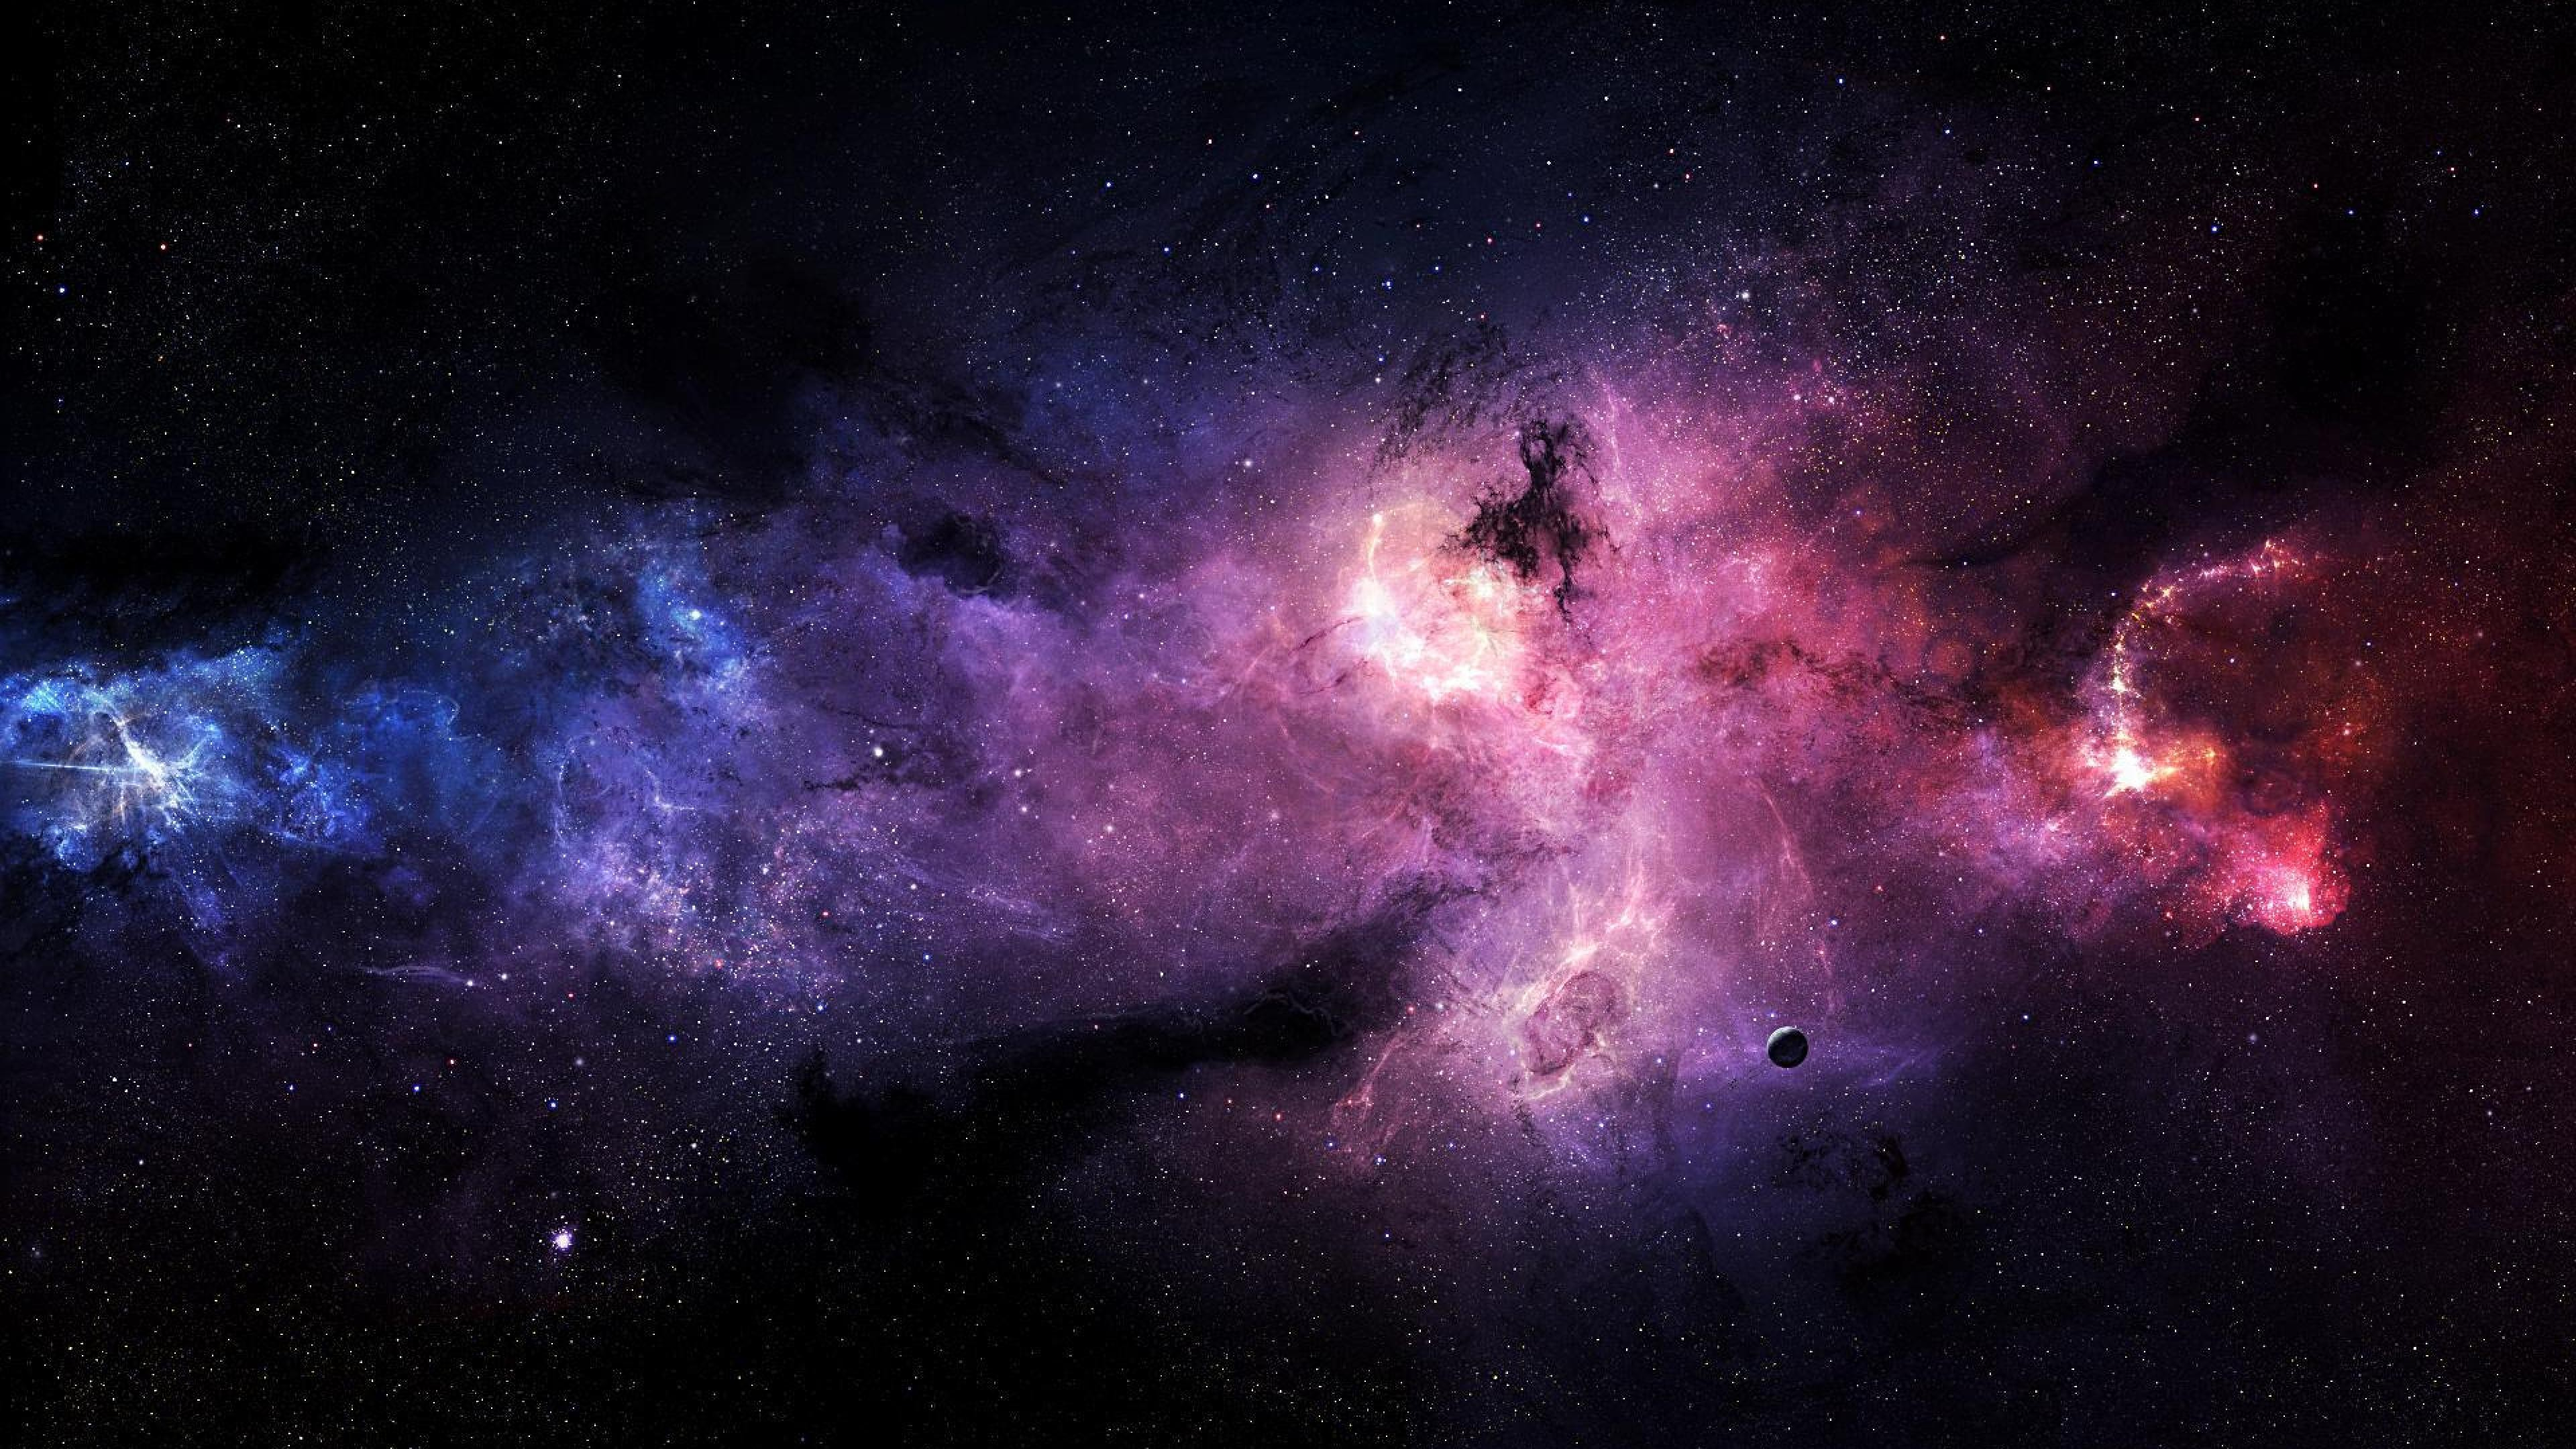 4k Wallpaper Space ① Download Free Awesome High Resolution